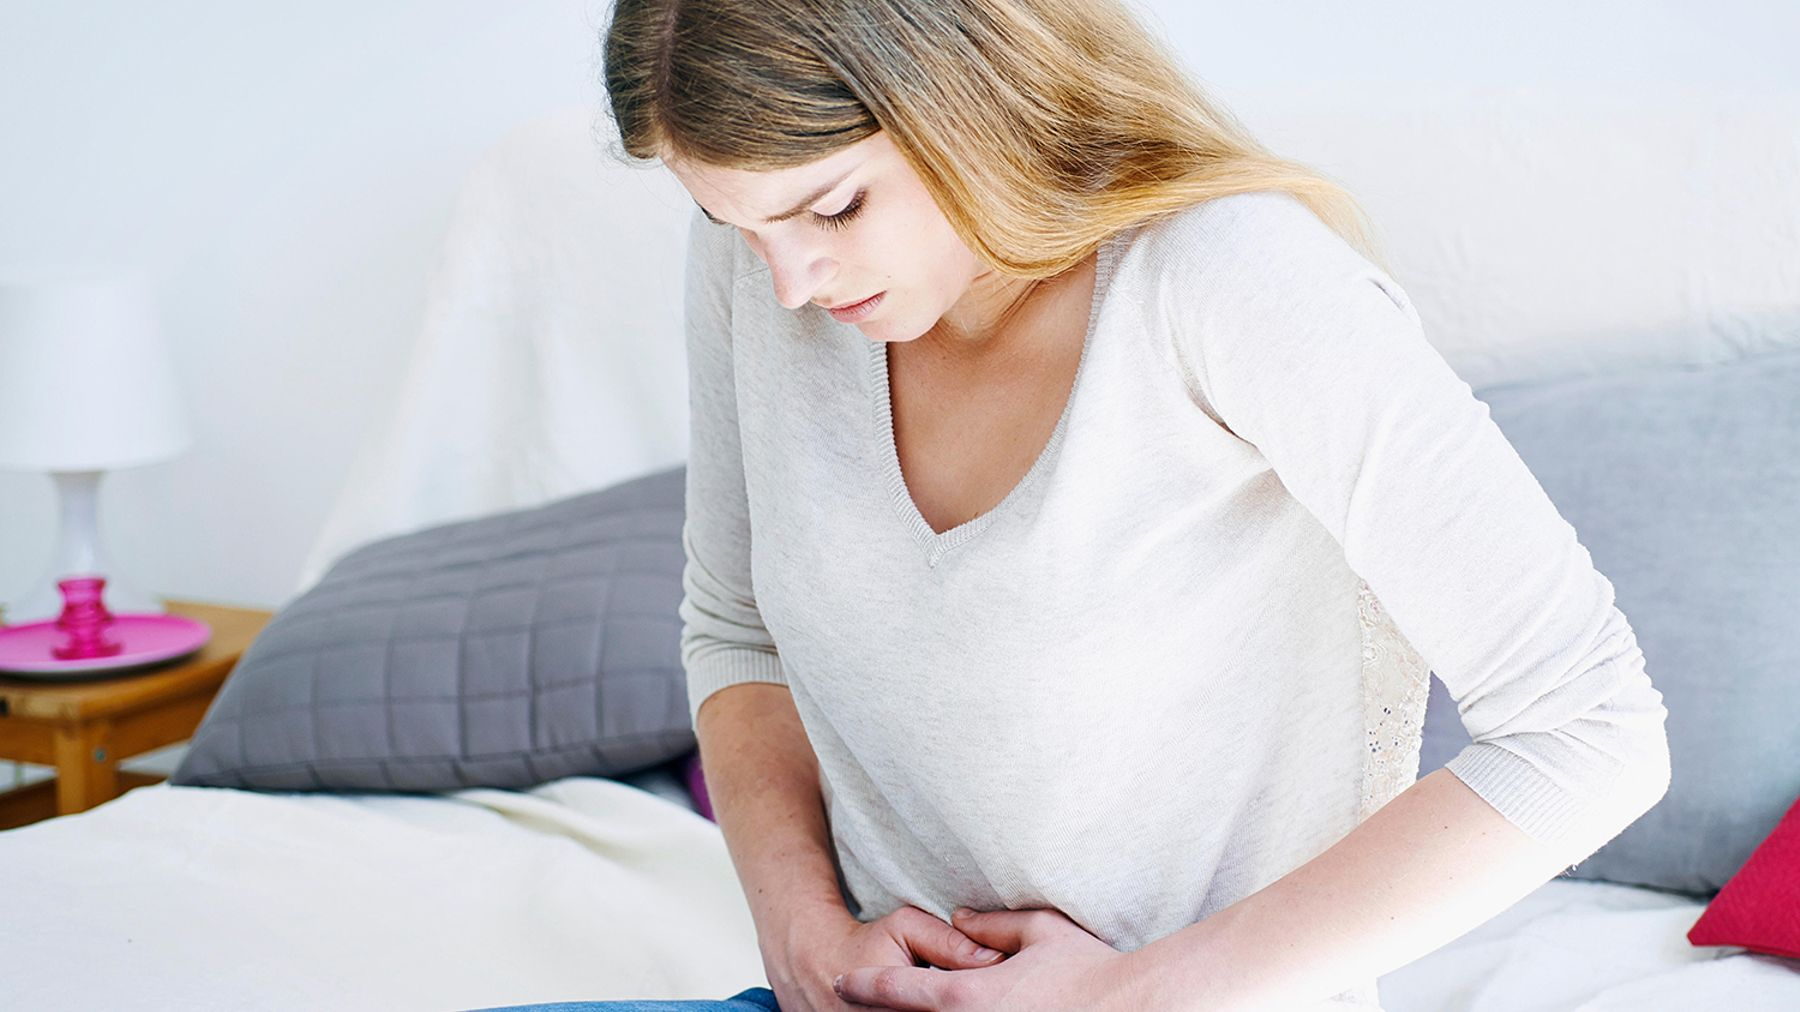 Ectopic pregnancy: Spotting the signs - and getting help